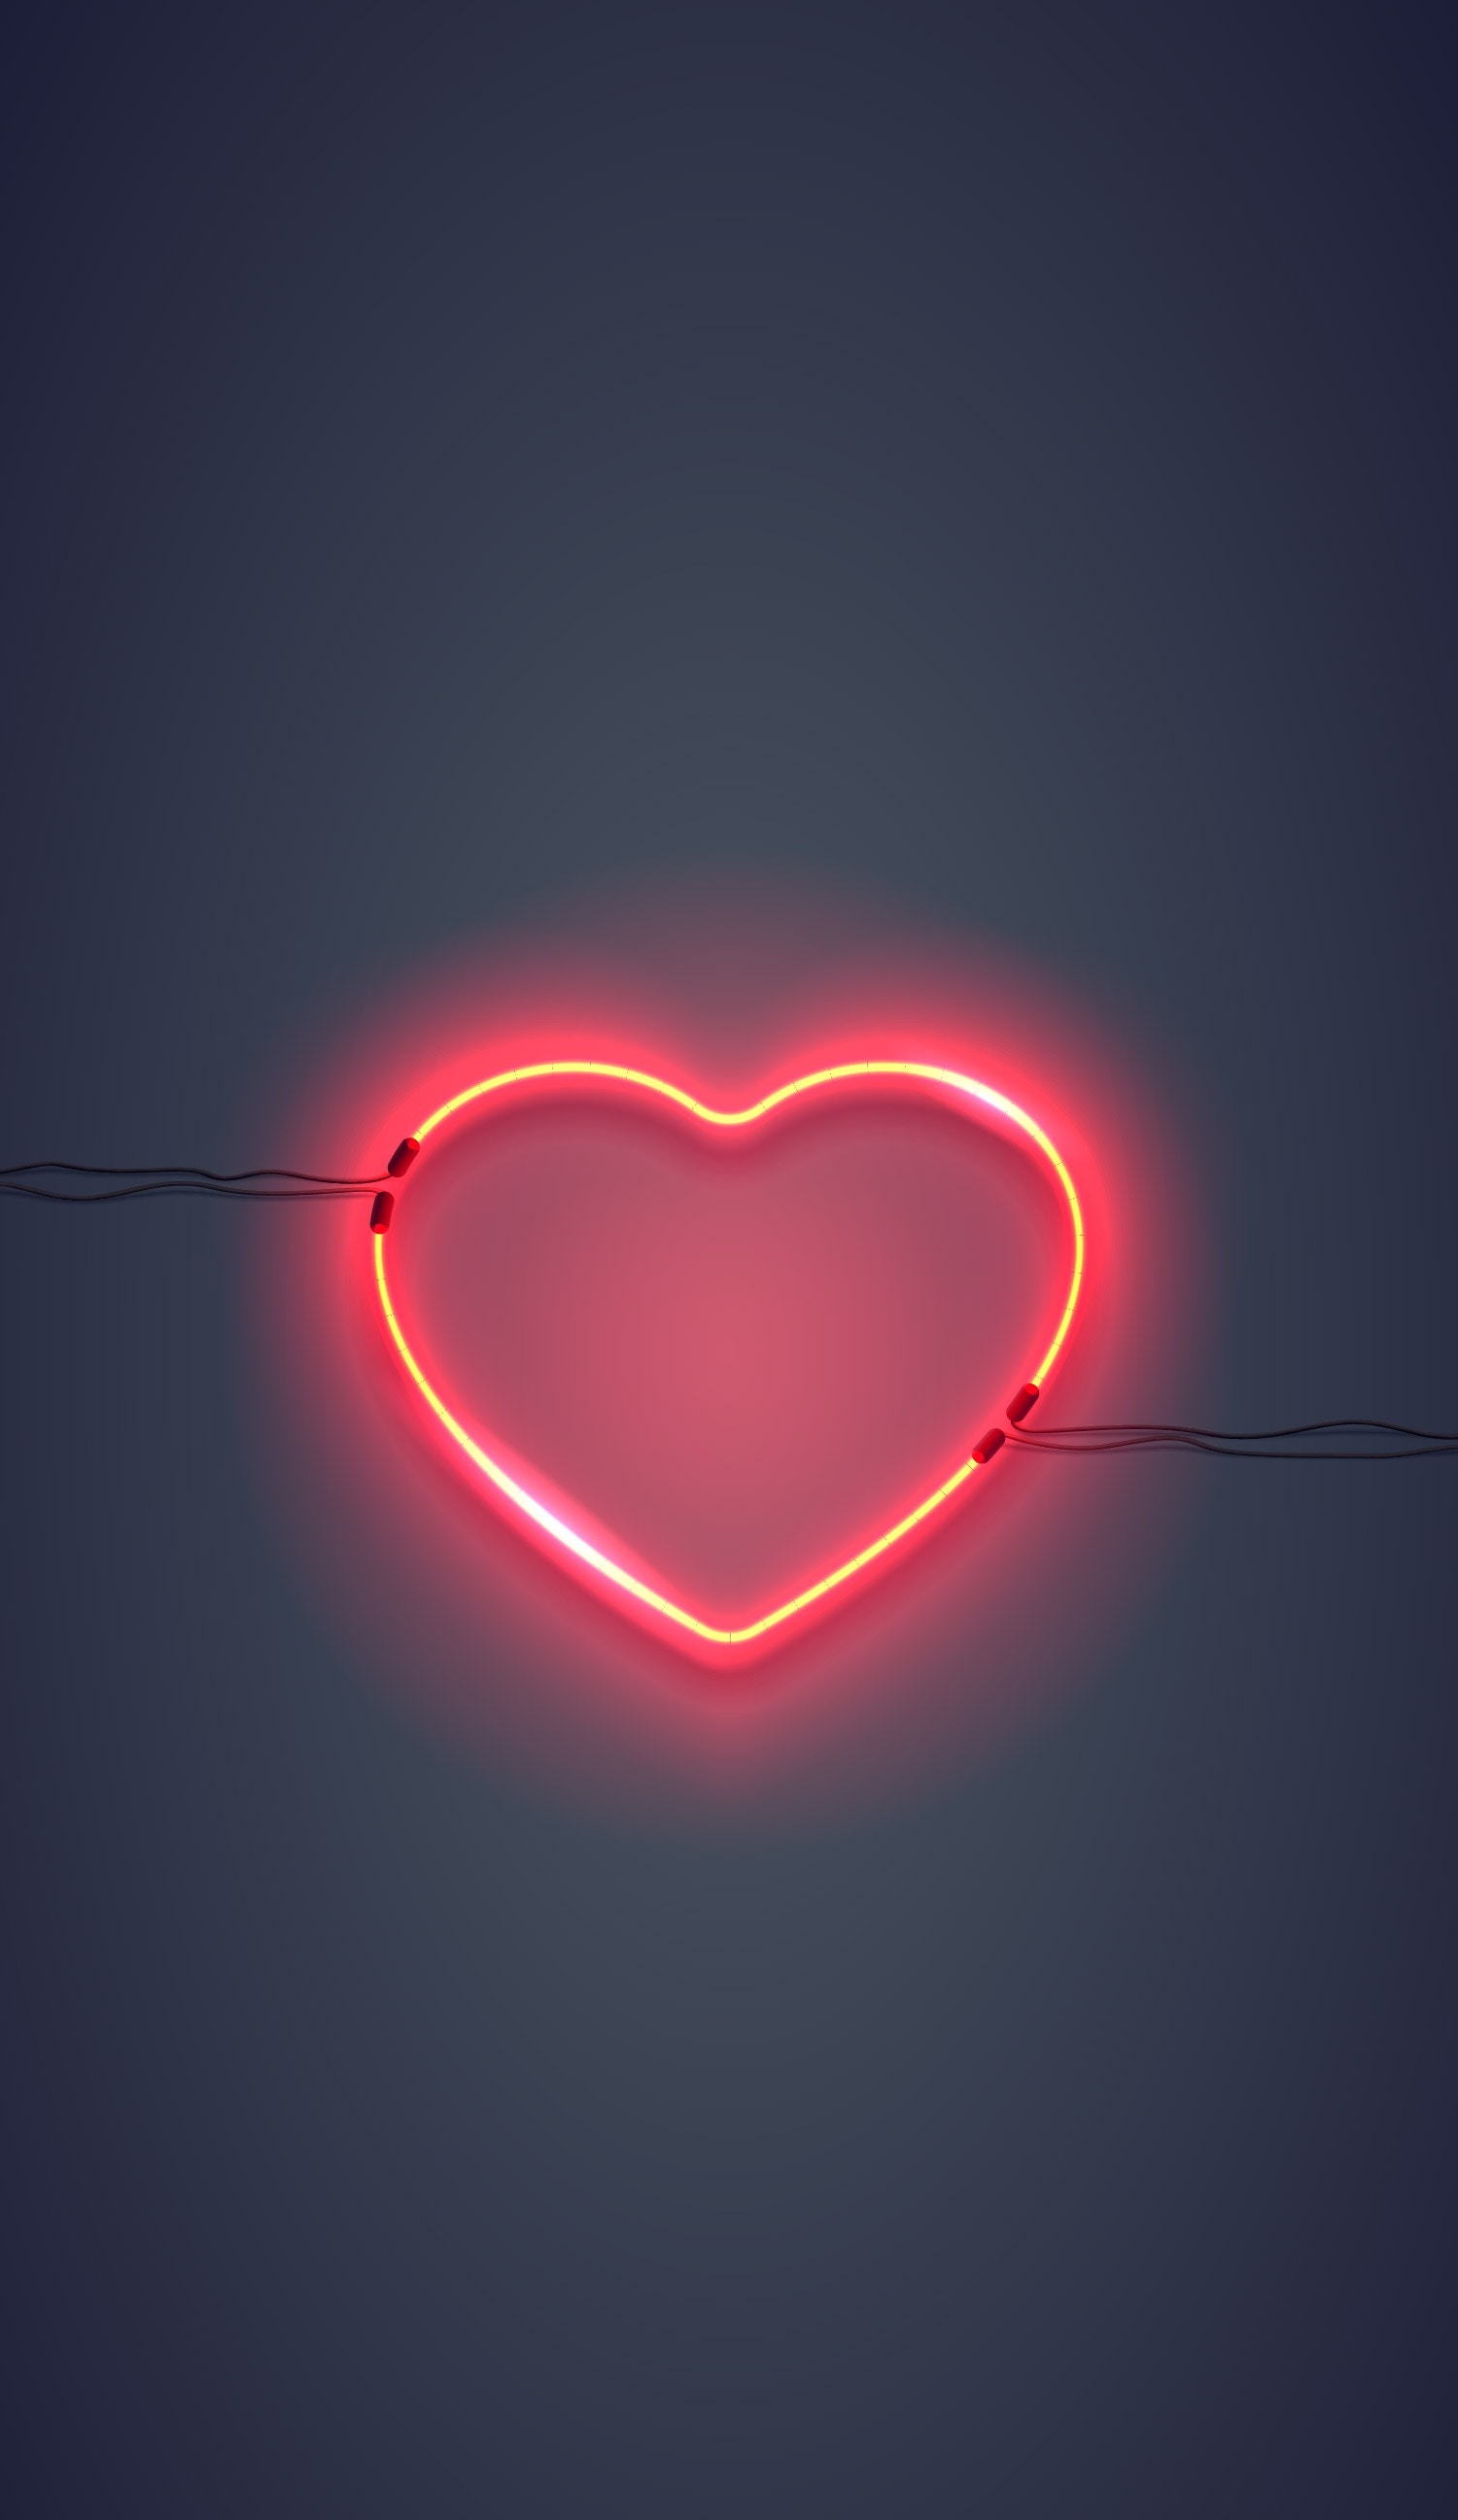 Graphic of a glowing heart